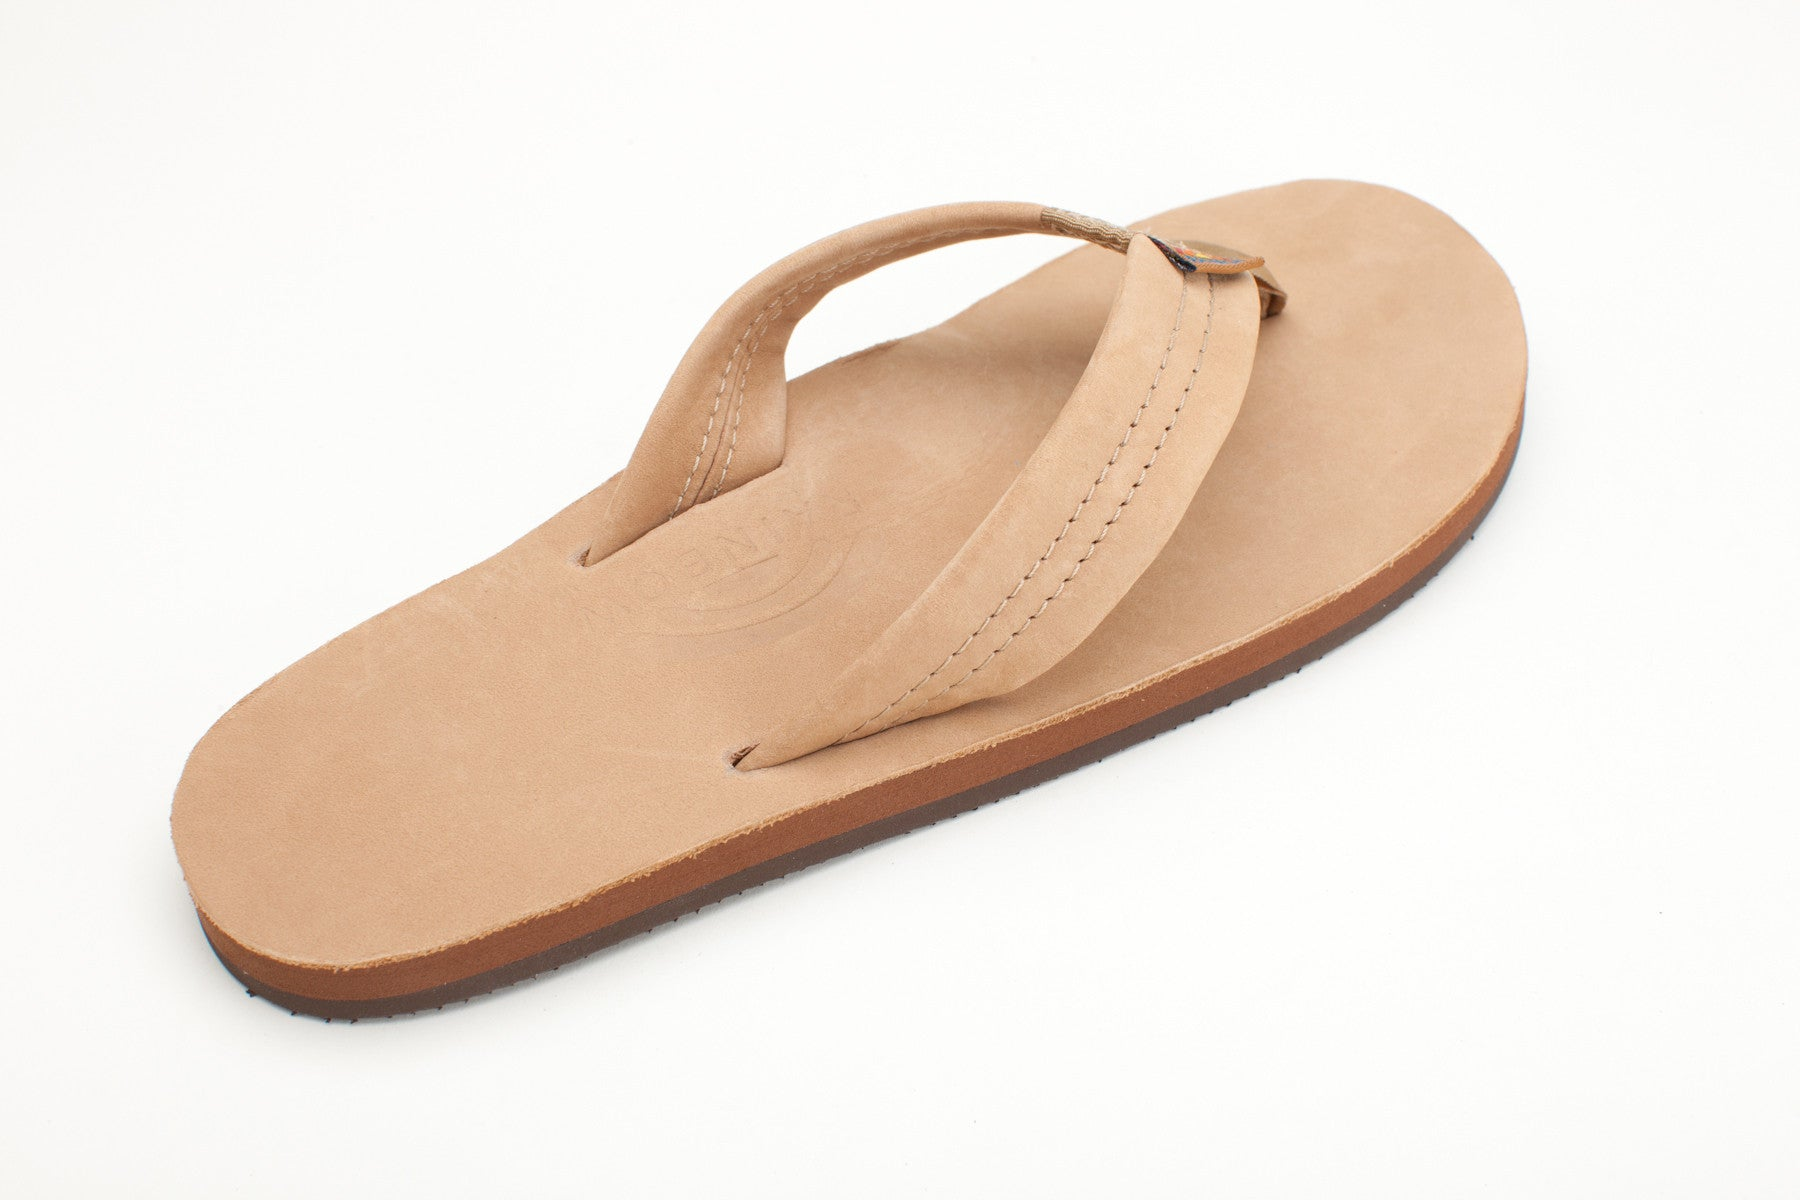 bb2cae5270ab Rainbow Sandals Women s Sierra Brown Premier Leather Single Layer with Arch  Support and a Wide Strap